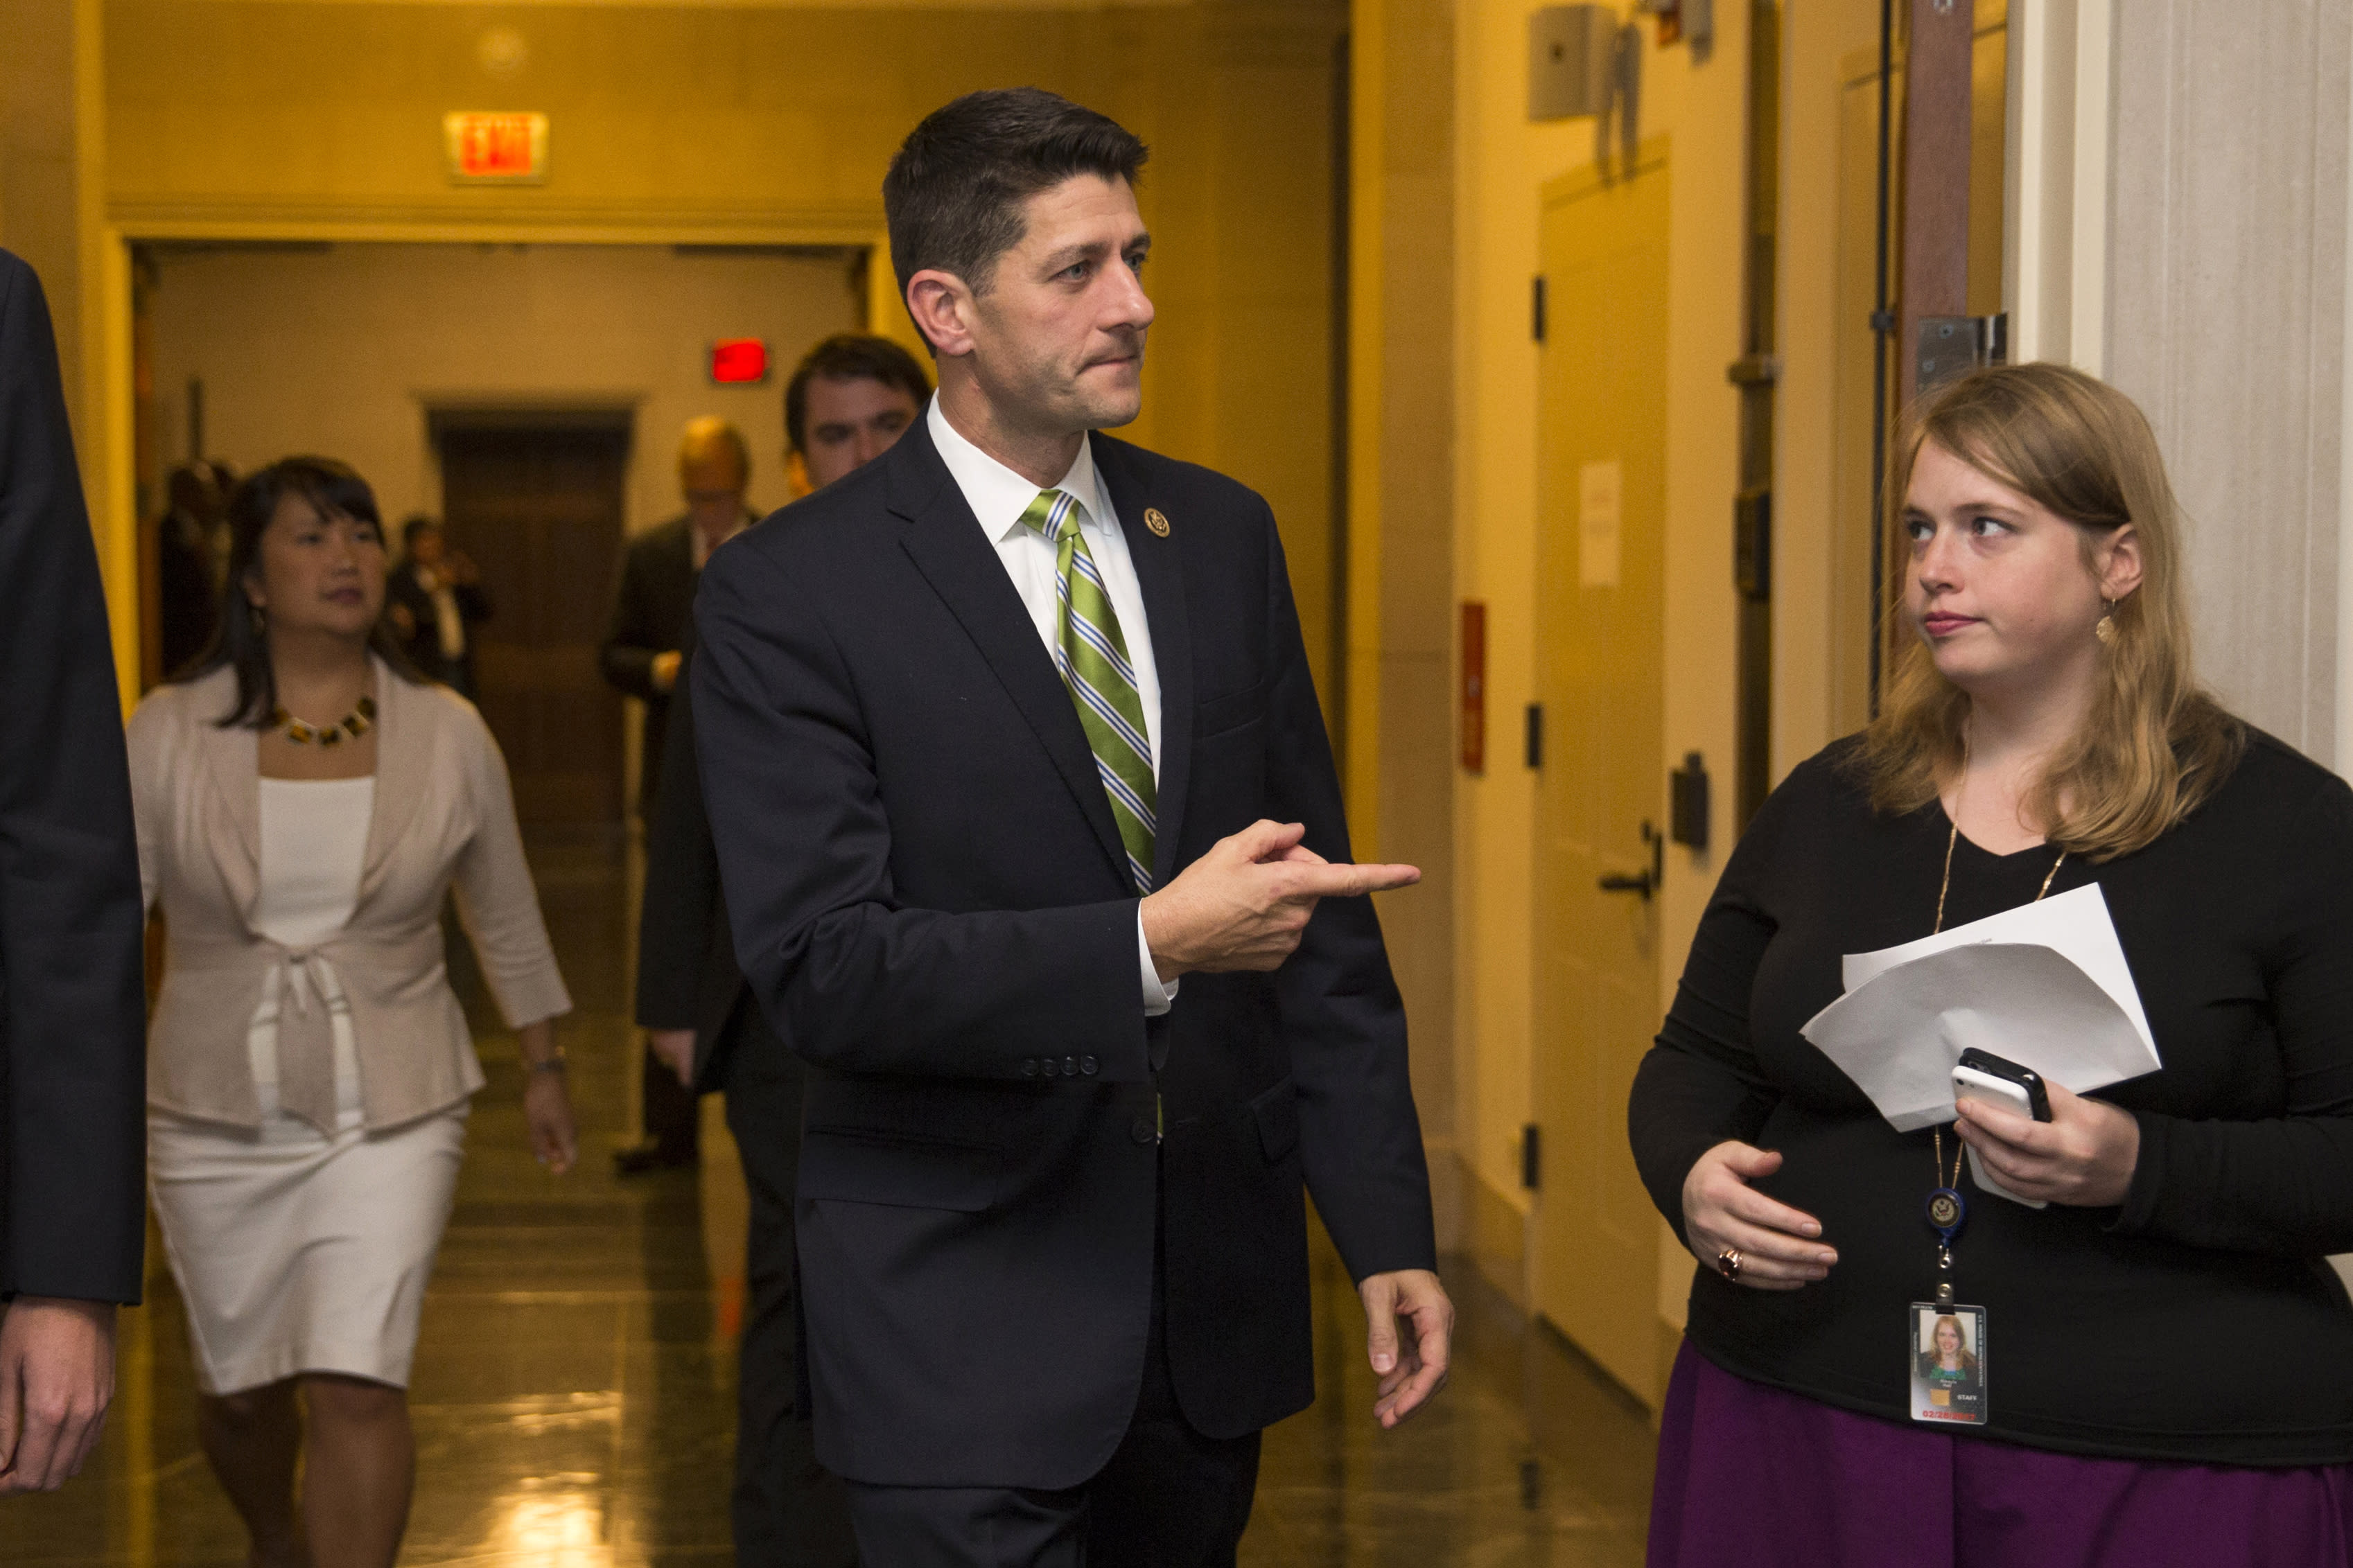 Paul Ryan weighs pros, cons of becoming next House speaker